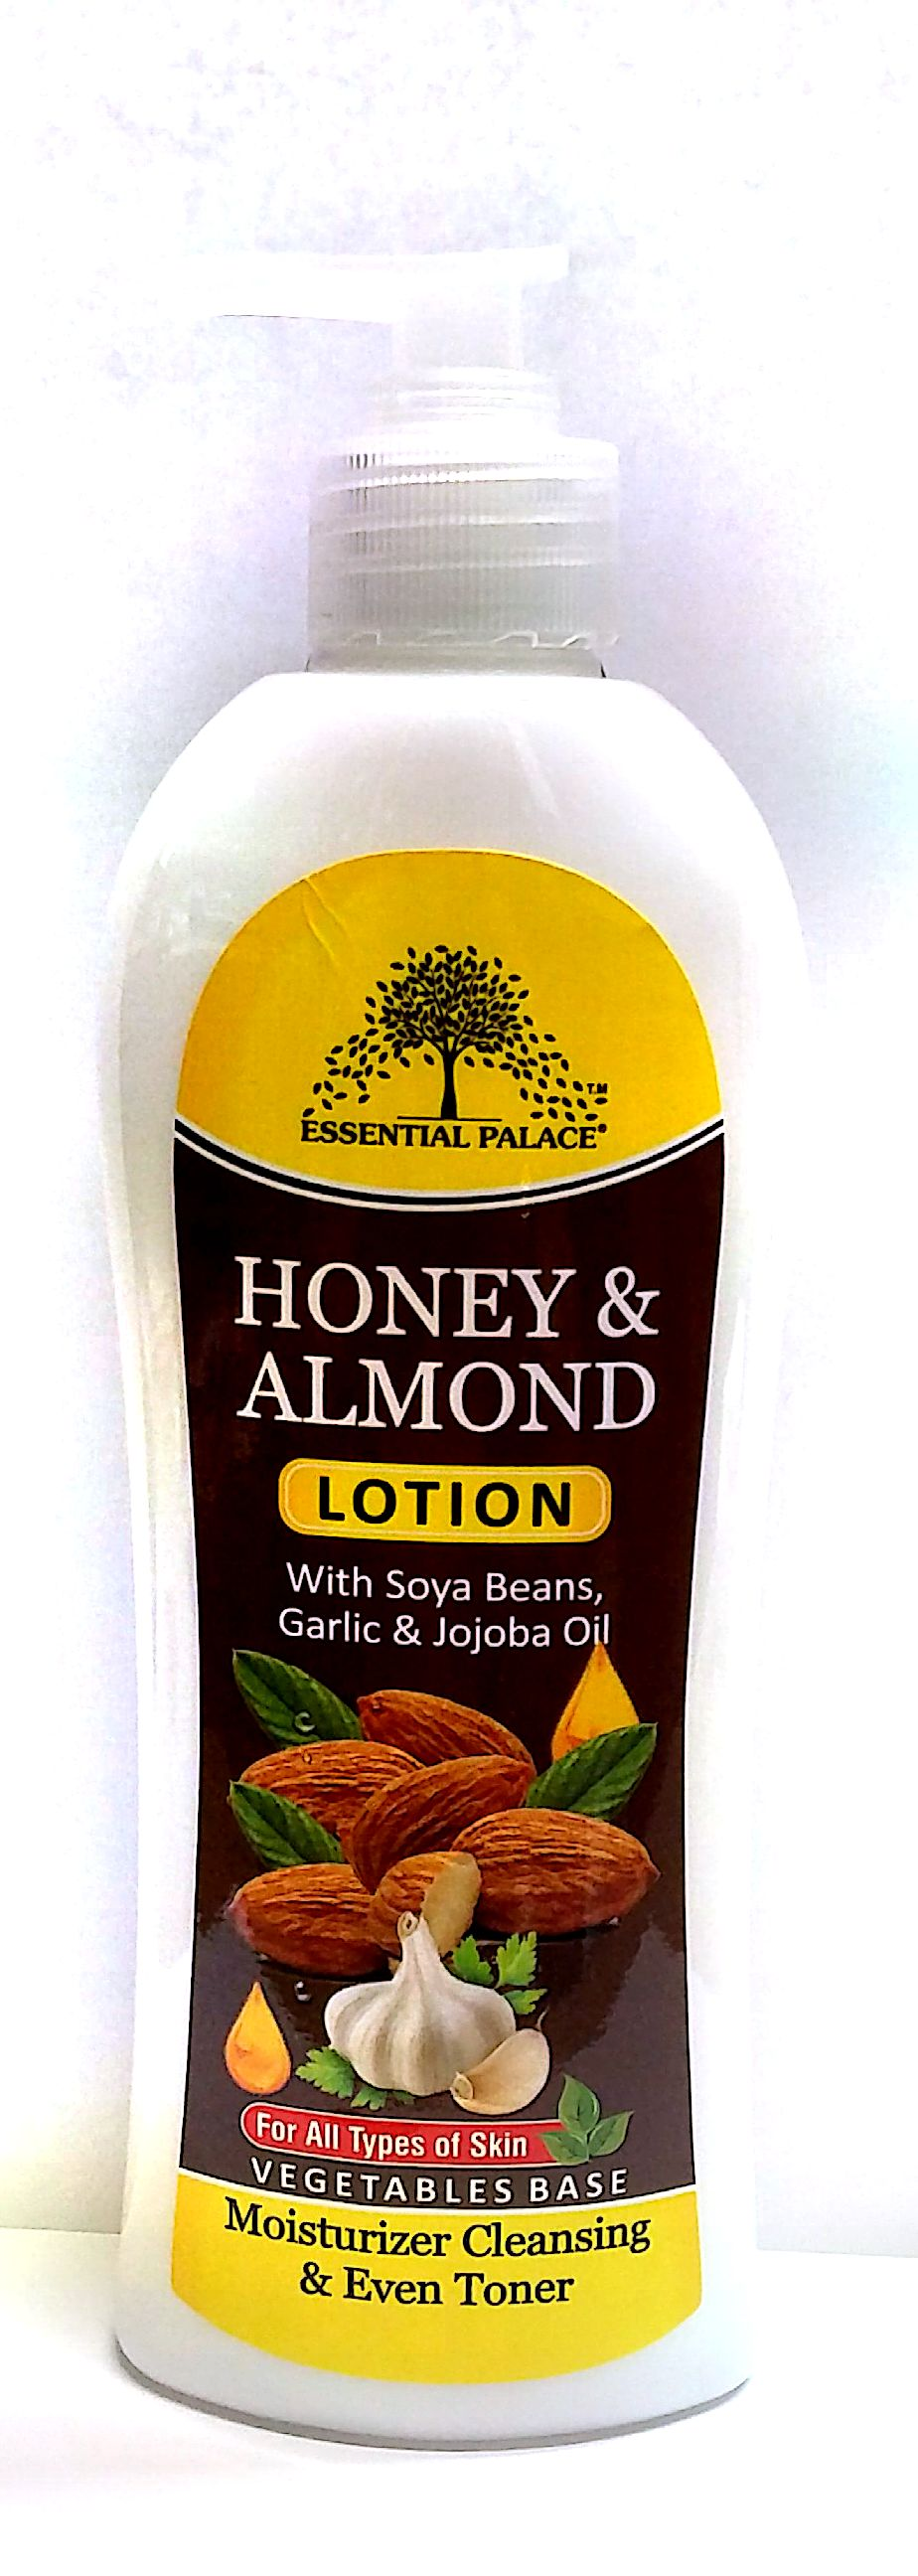 Honey & Almond Lotion. | Essential Palace Inc. Almond Honey